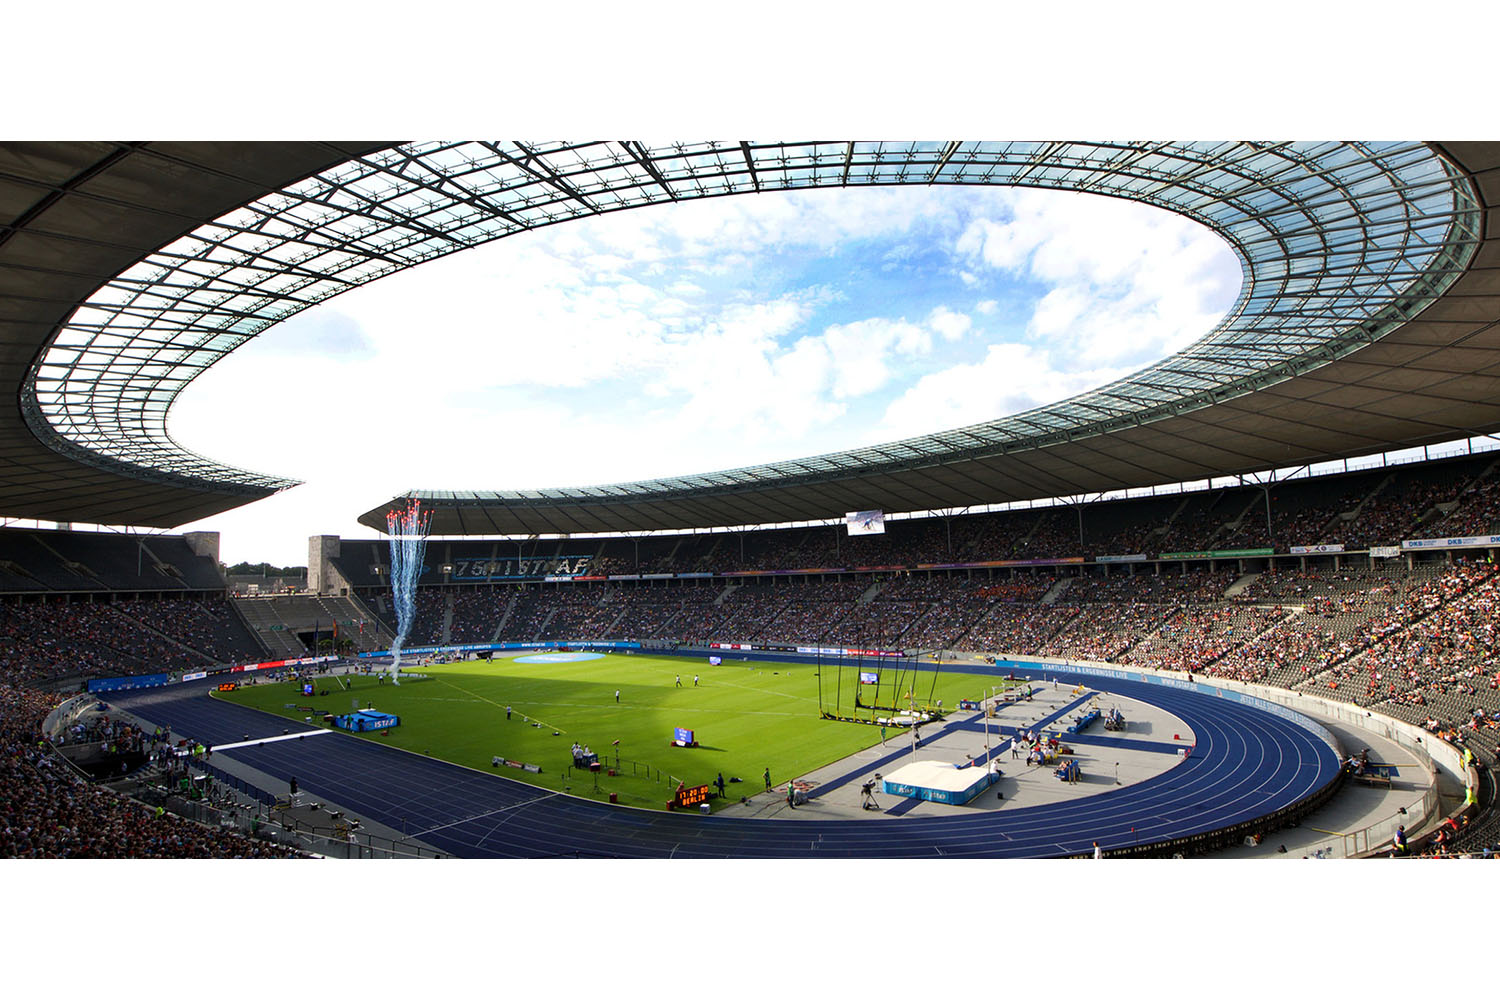 The Olympia Stadium Berlin is a Olympic and FIFA Germany 2006 World Cup Stadium, with a capacity of more than 70000 people. Extensive simulation calculations using the computer model were the core of work of ADA-AMC - WSDG. Panoramic interior view.